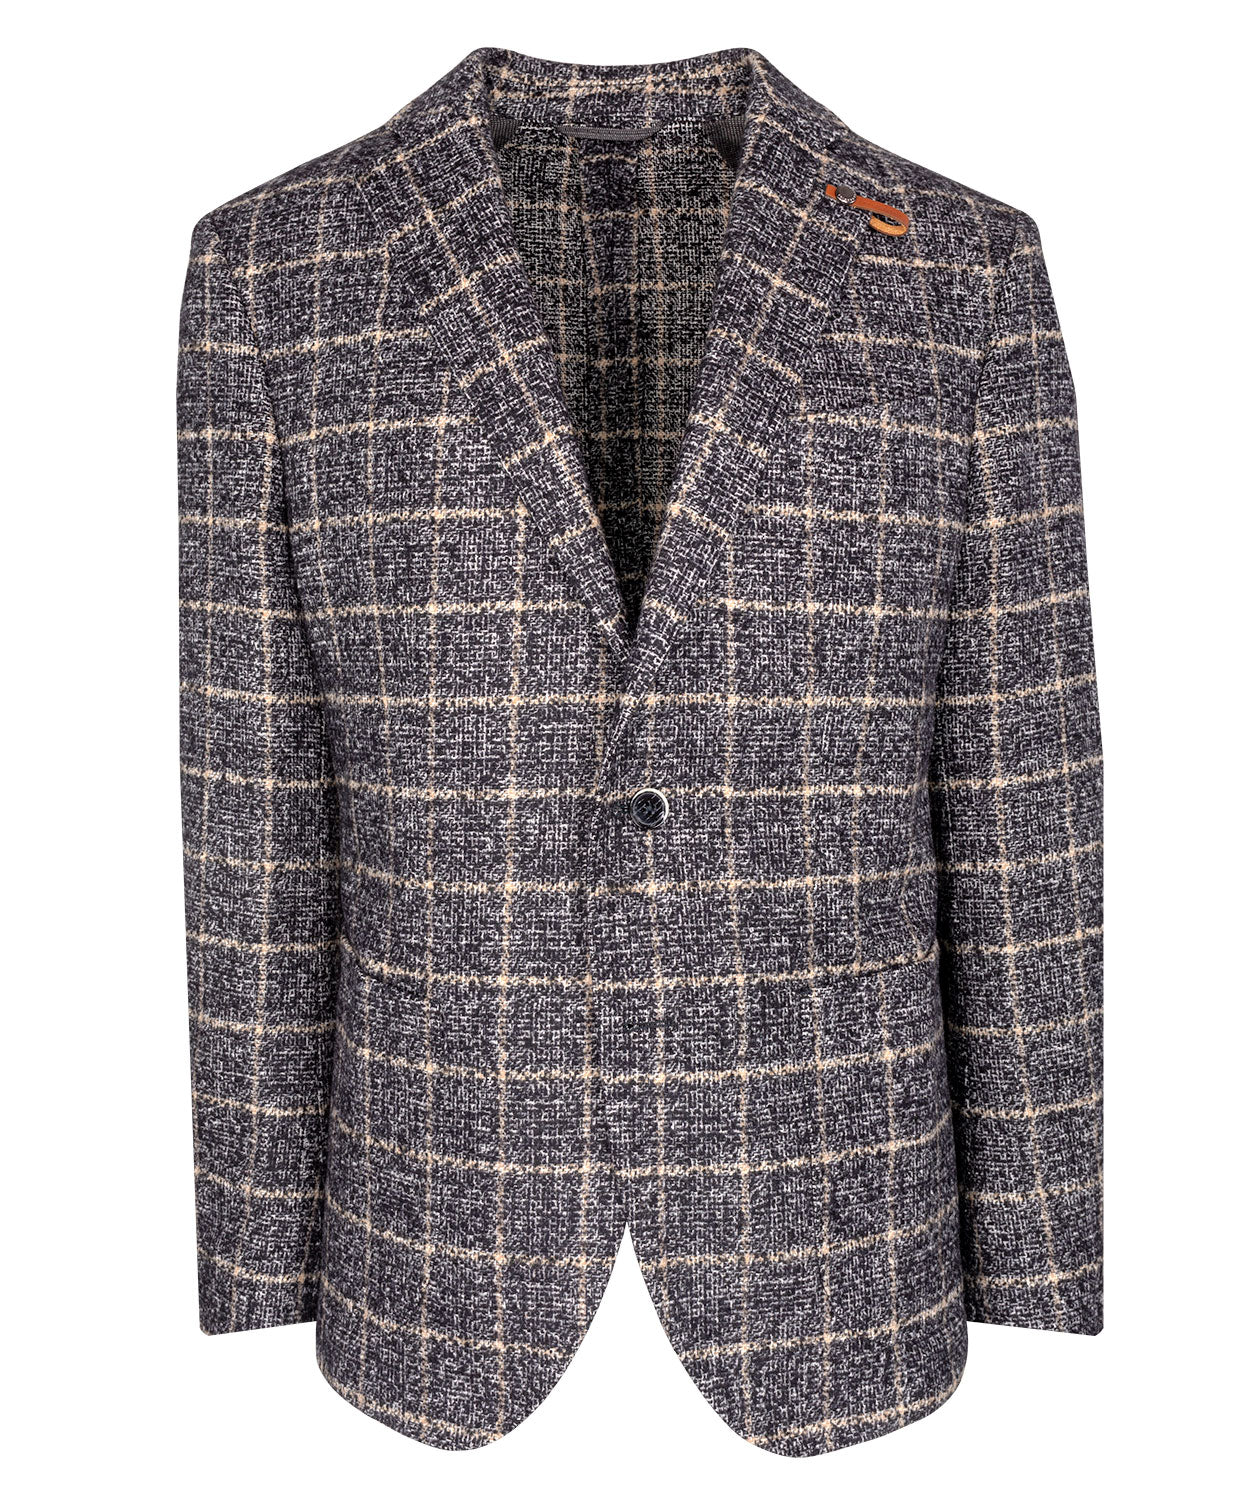 Seba Black/Camel Lofty Windowpane on Melange Check Jacket